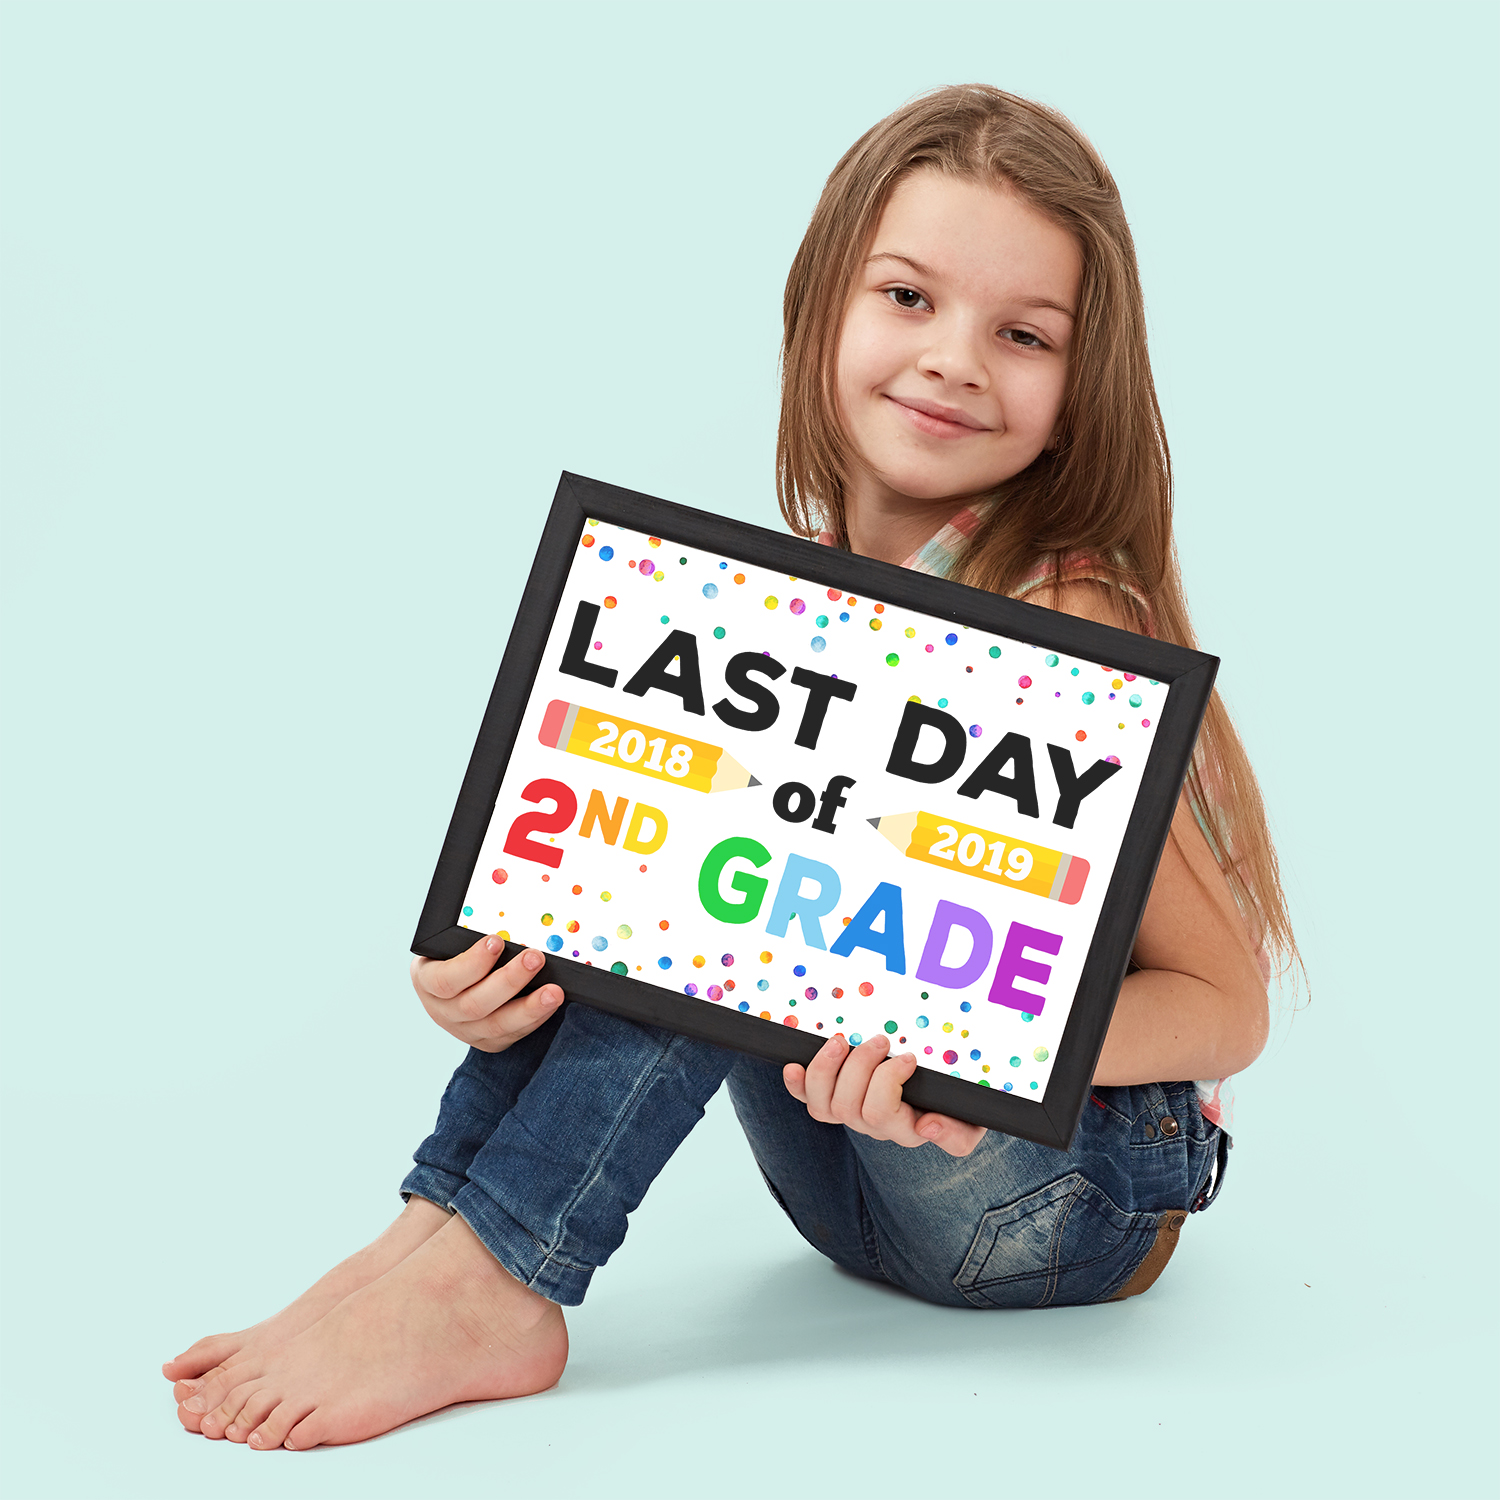 image about Last Day of 2nd Grade Printable identified as Ultimate Working day of College or university Symptoms - Free of charge Printable - Contentment is